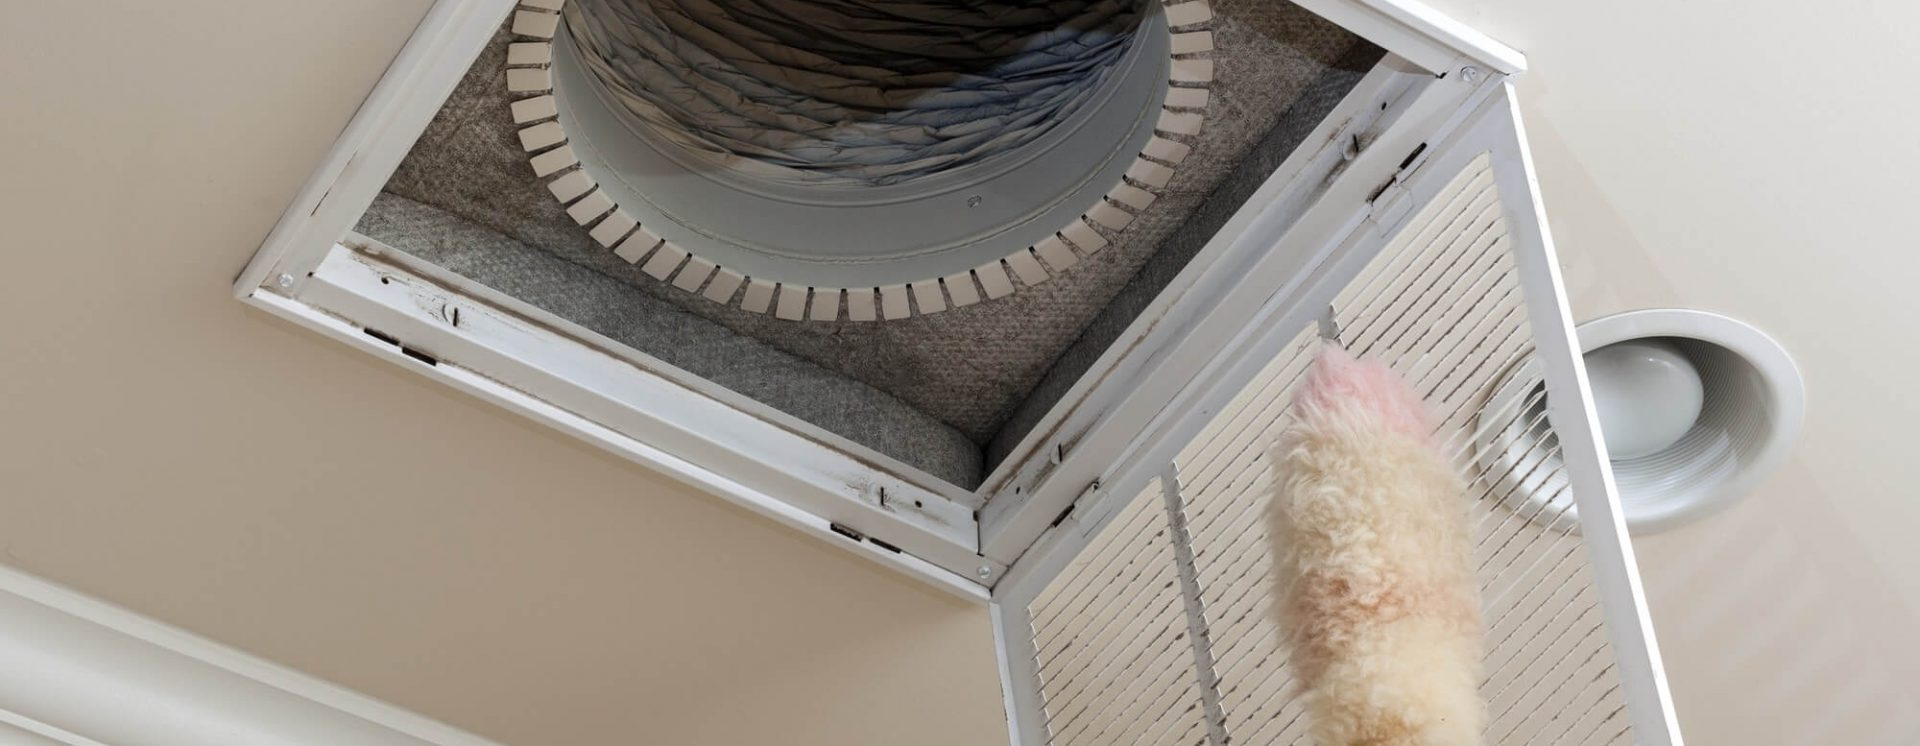 Schedule Your Air Duct Cleaning Today!